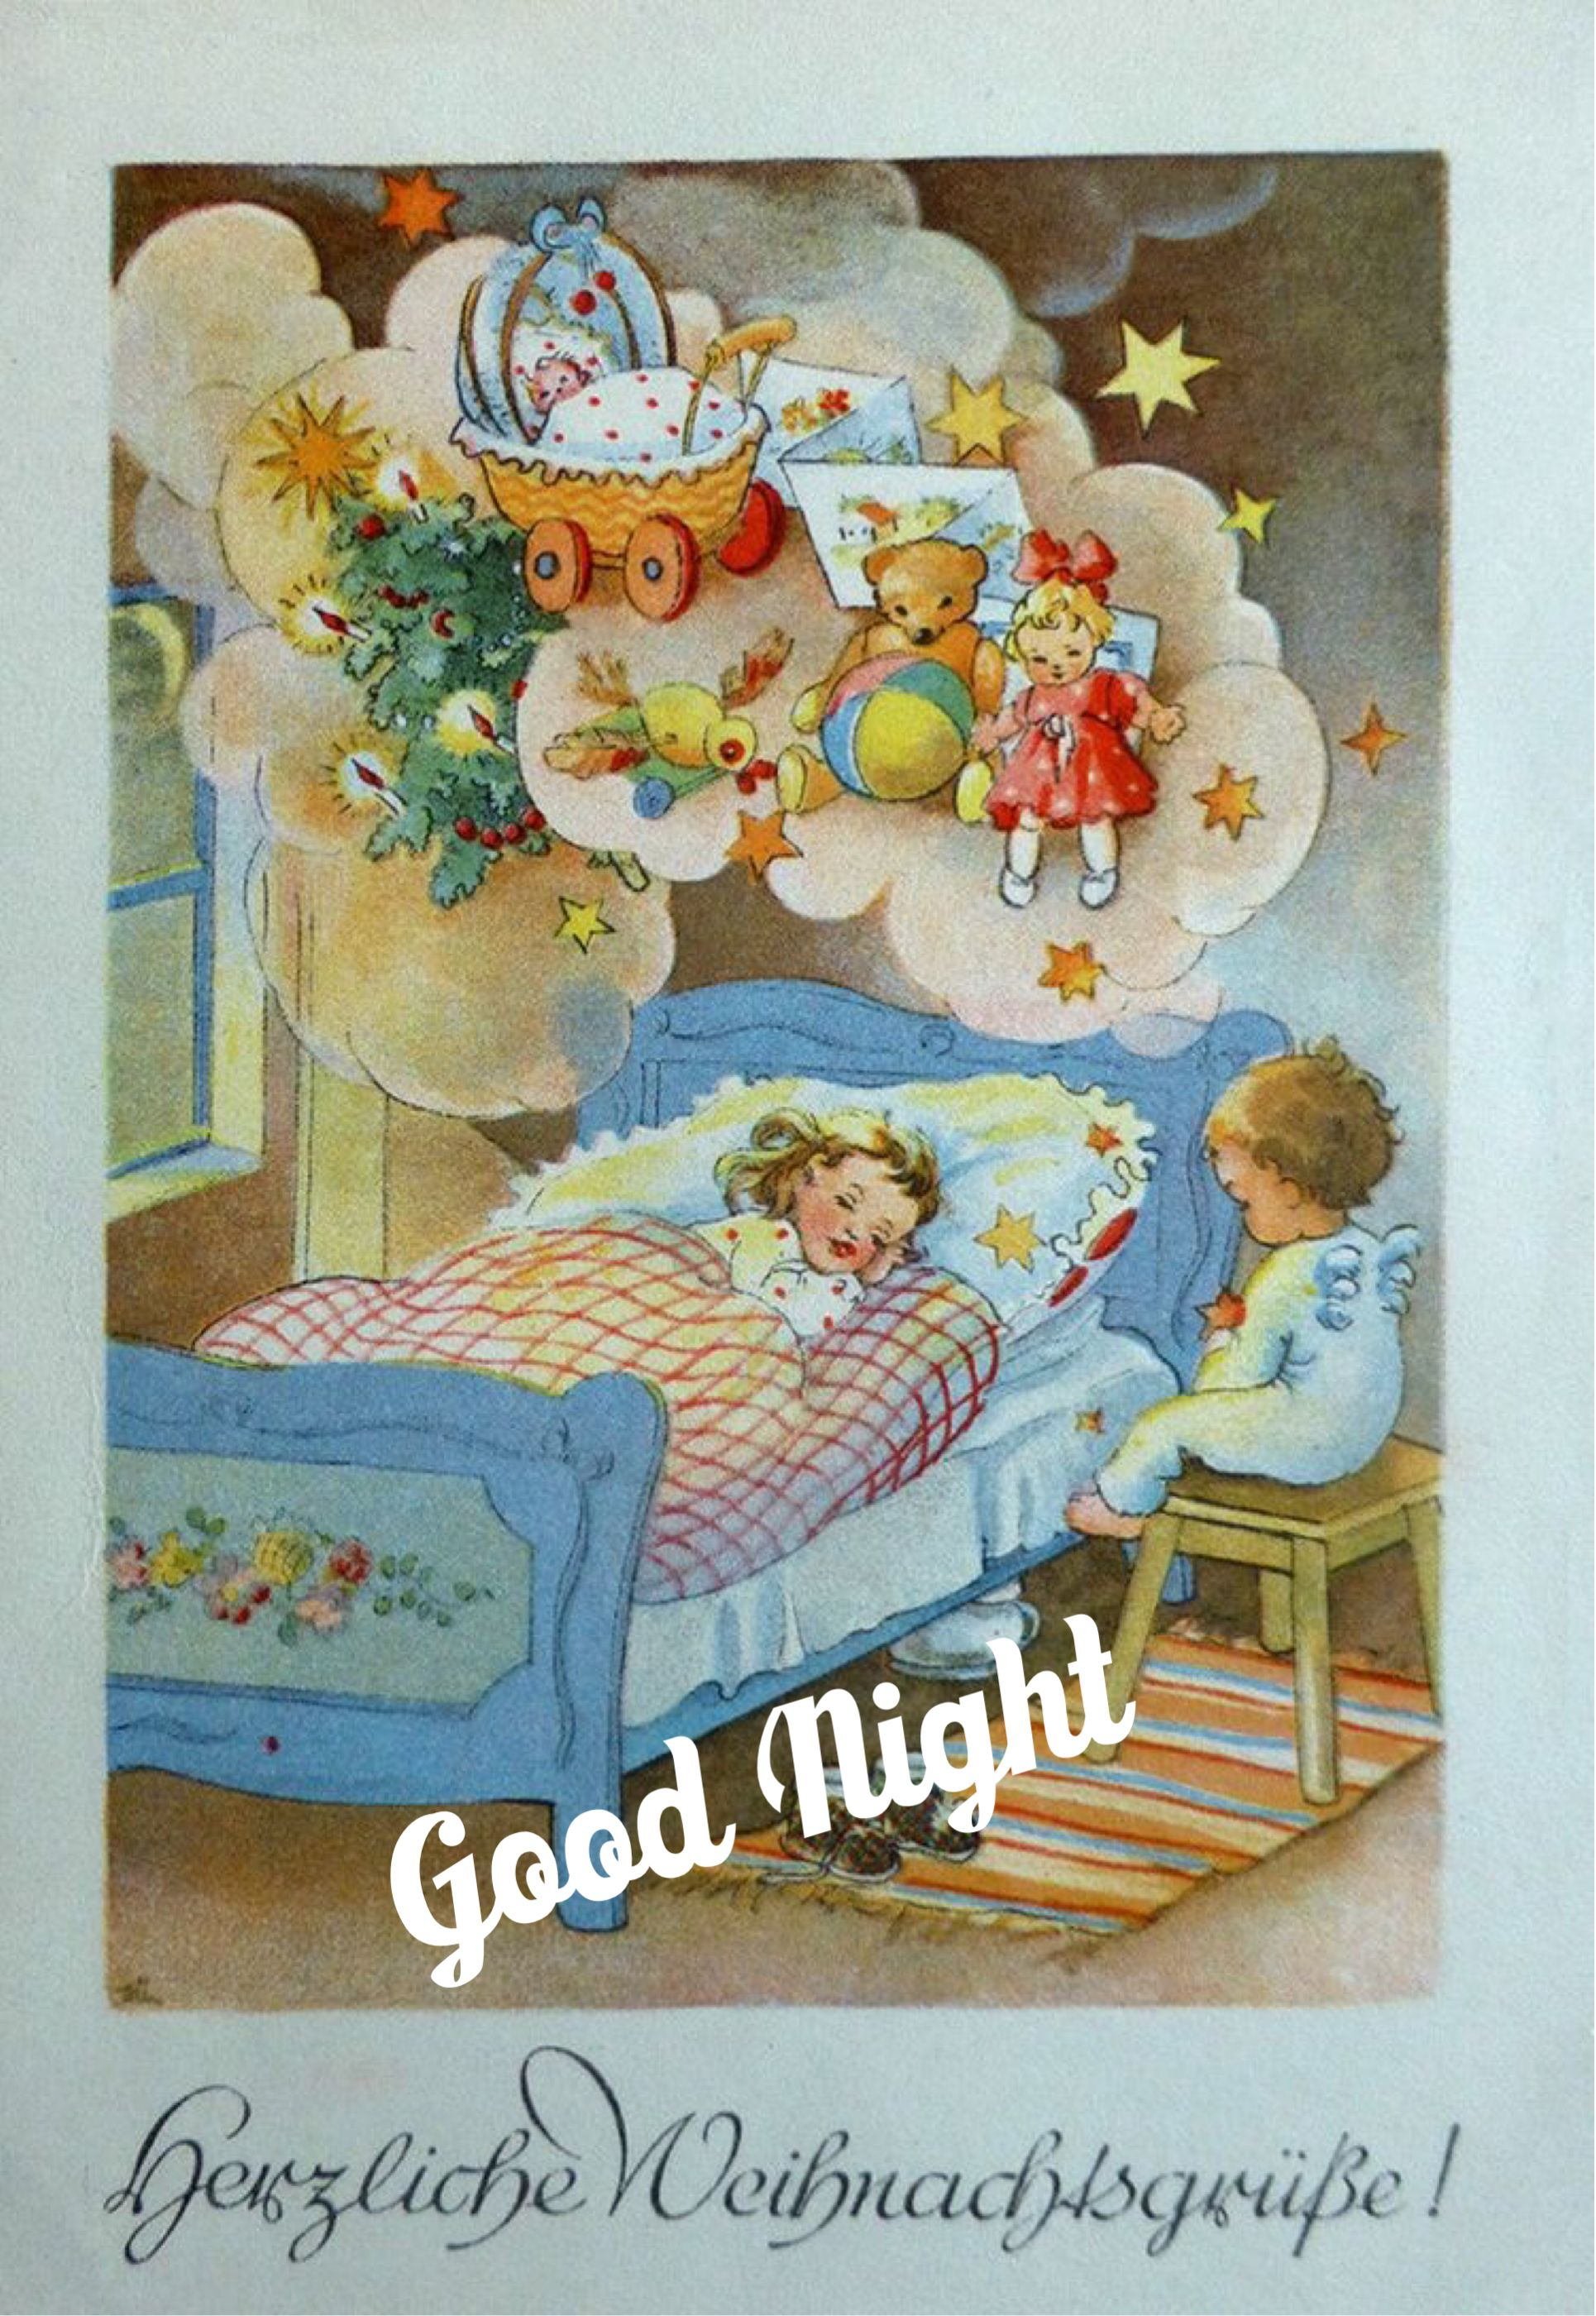 Good night sister and all, have a restful night,♥★♥.